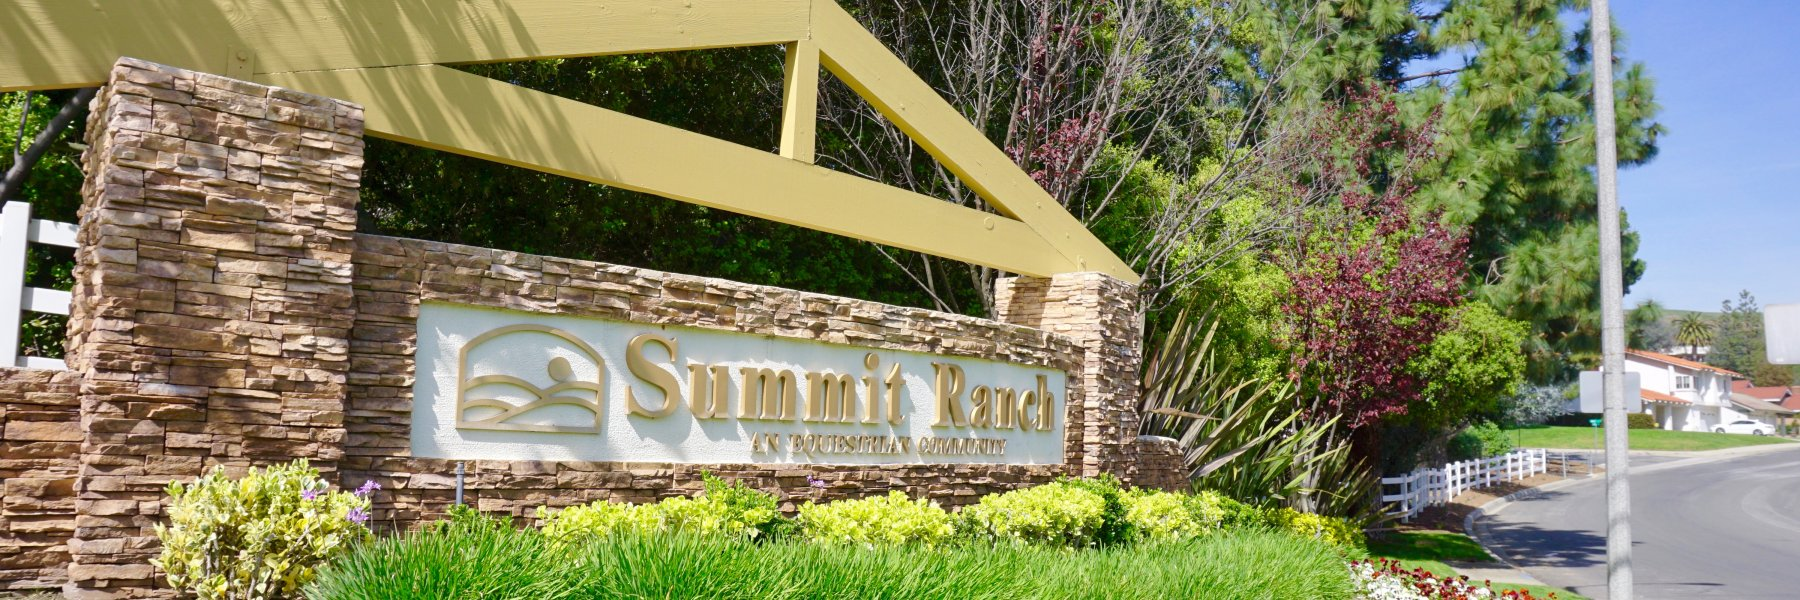 Summit Ranch is a community of homes in Chino Hills California